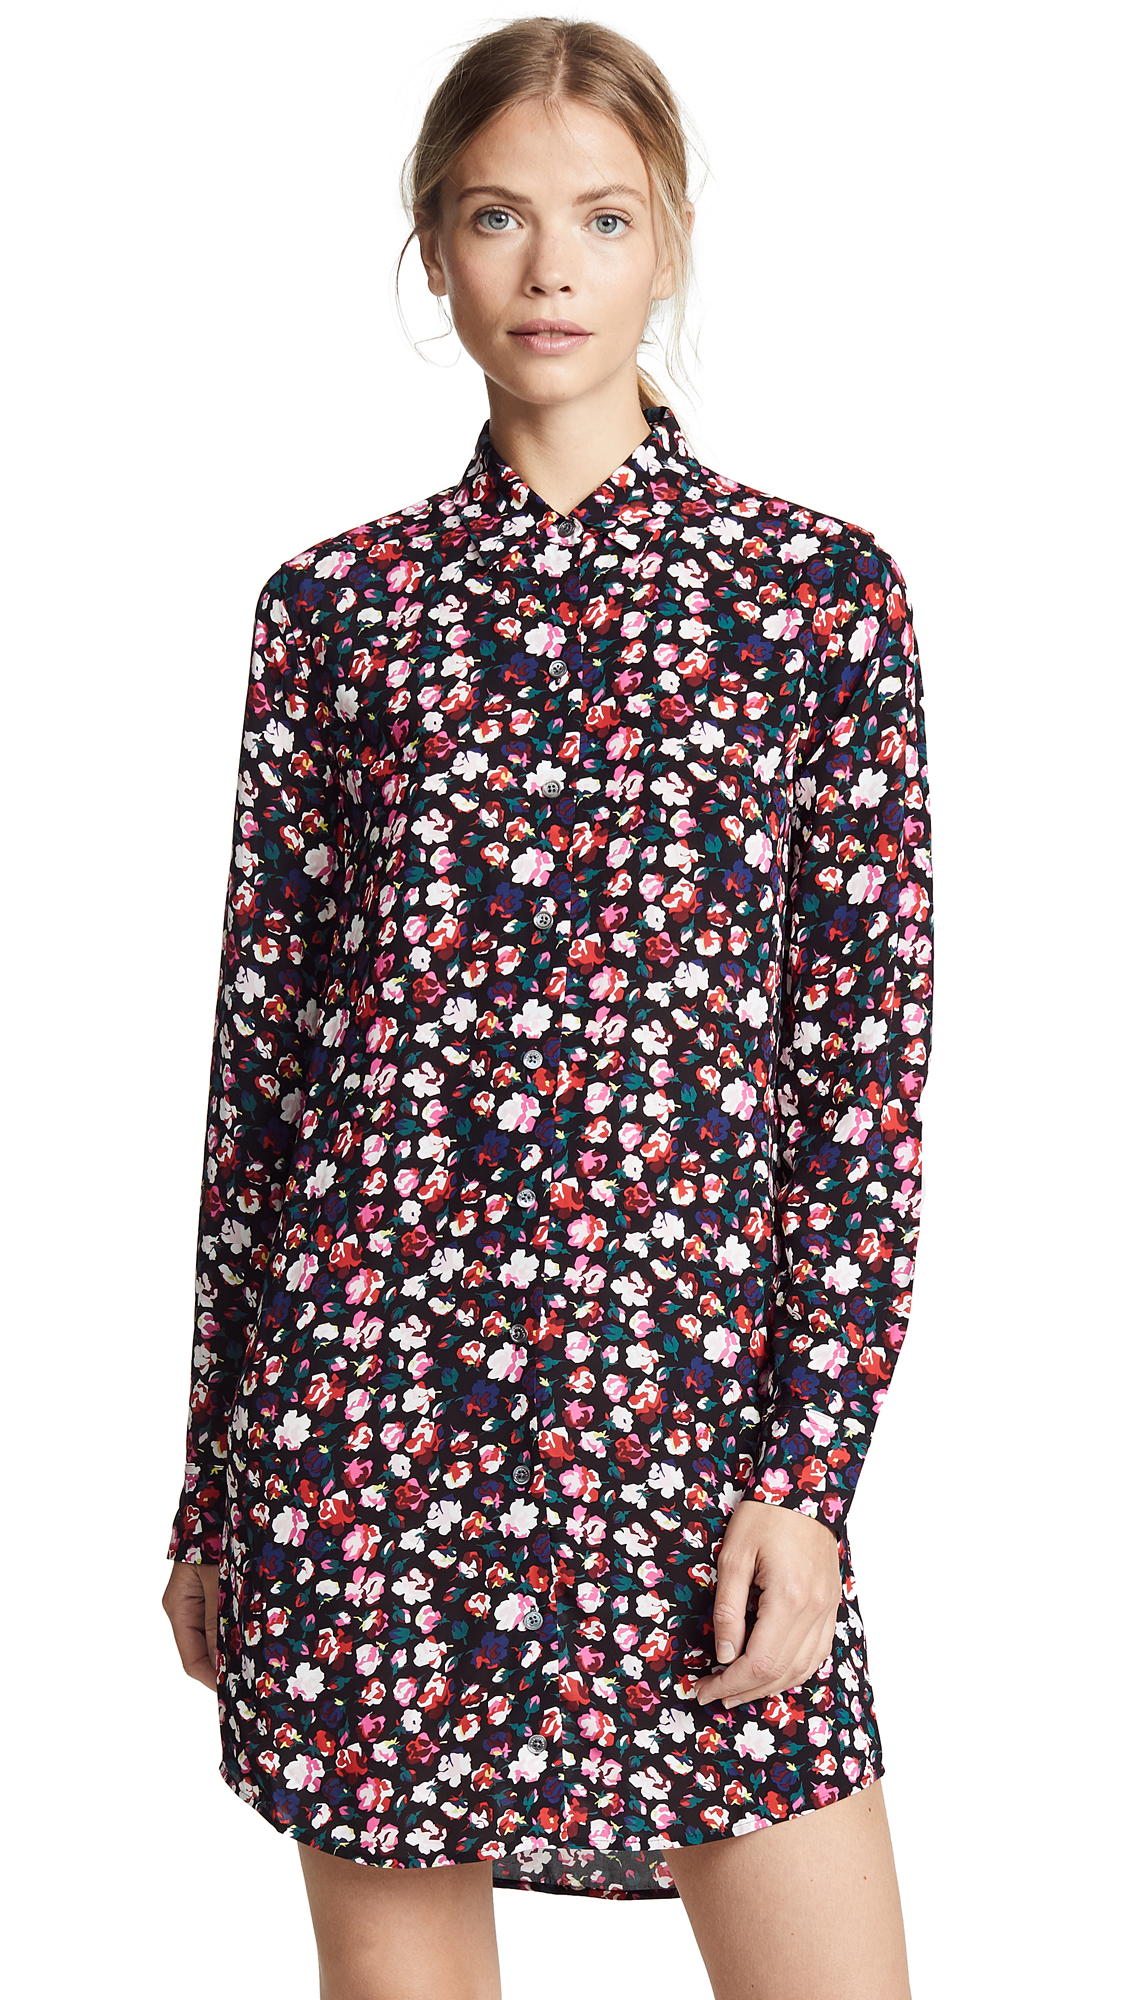 Equipment Painterly Floral Essential Dress